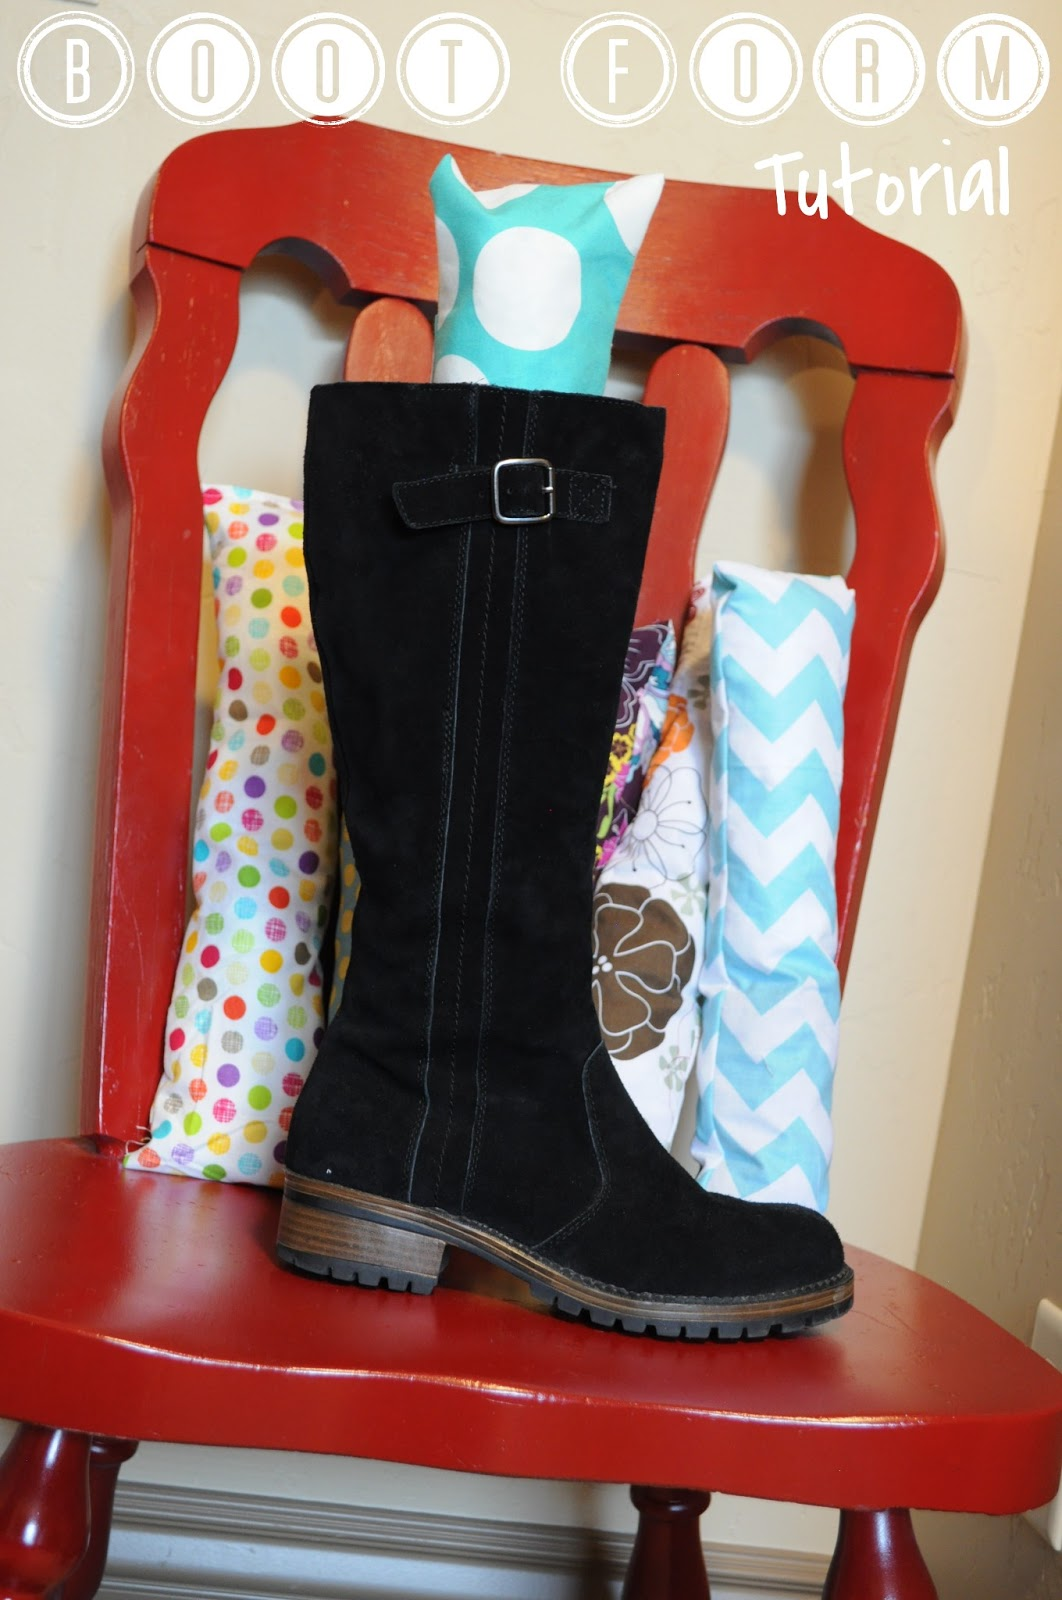 the fabric boot buddy fabric boot form tutorial